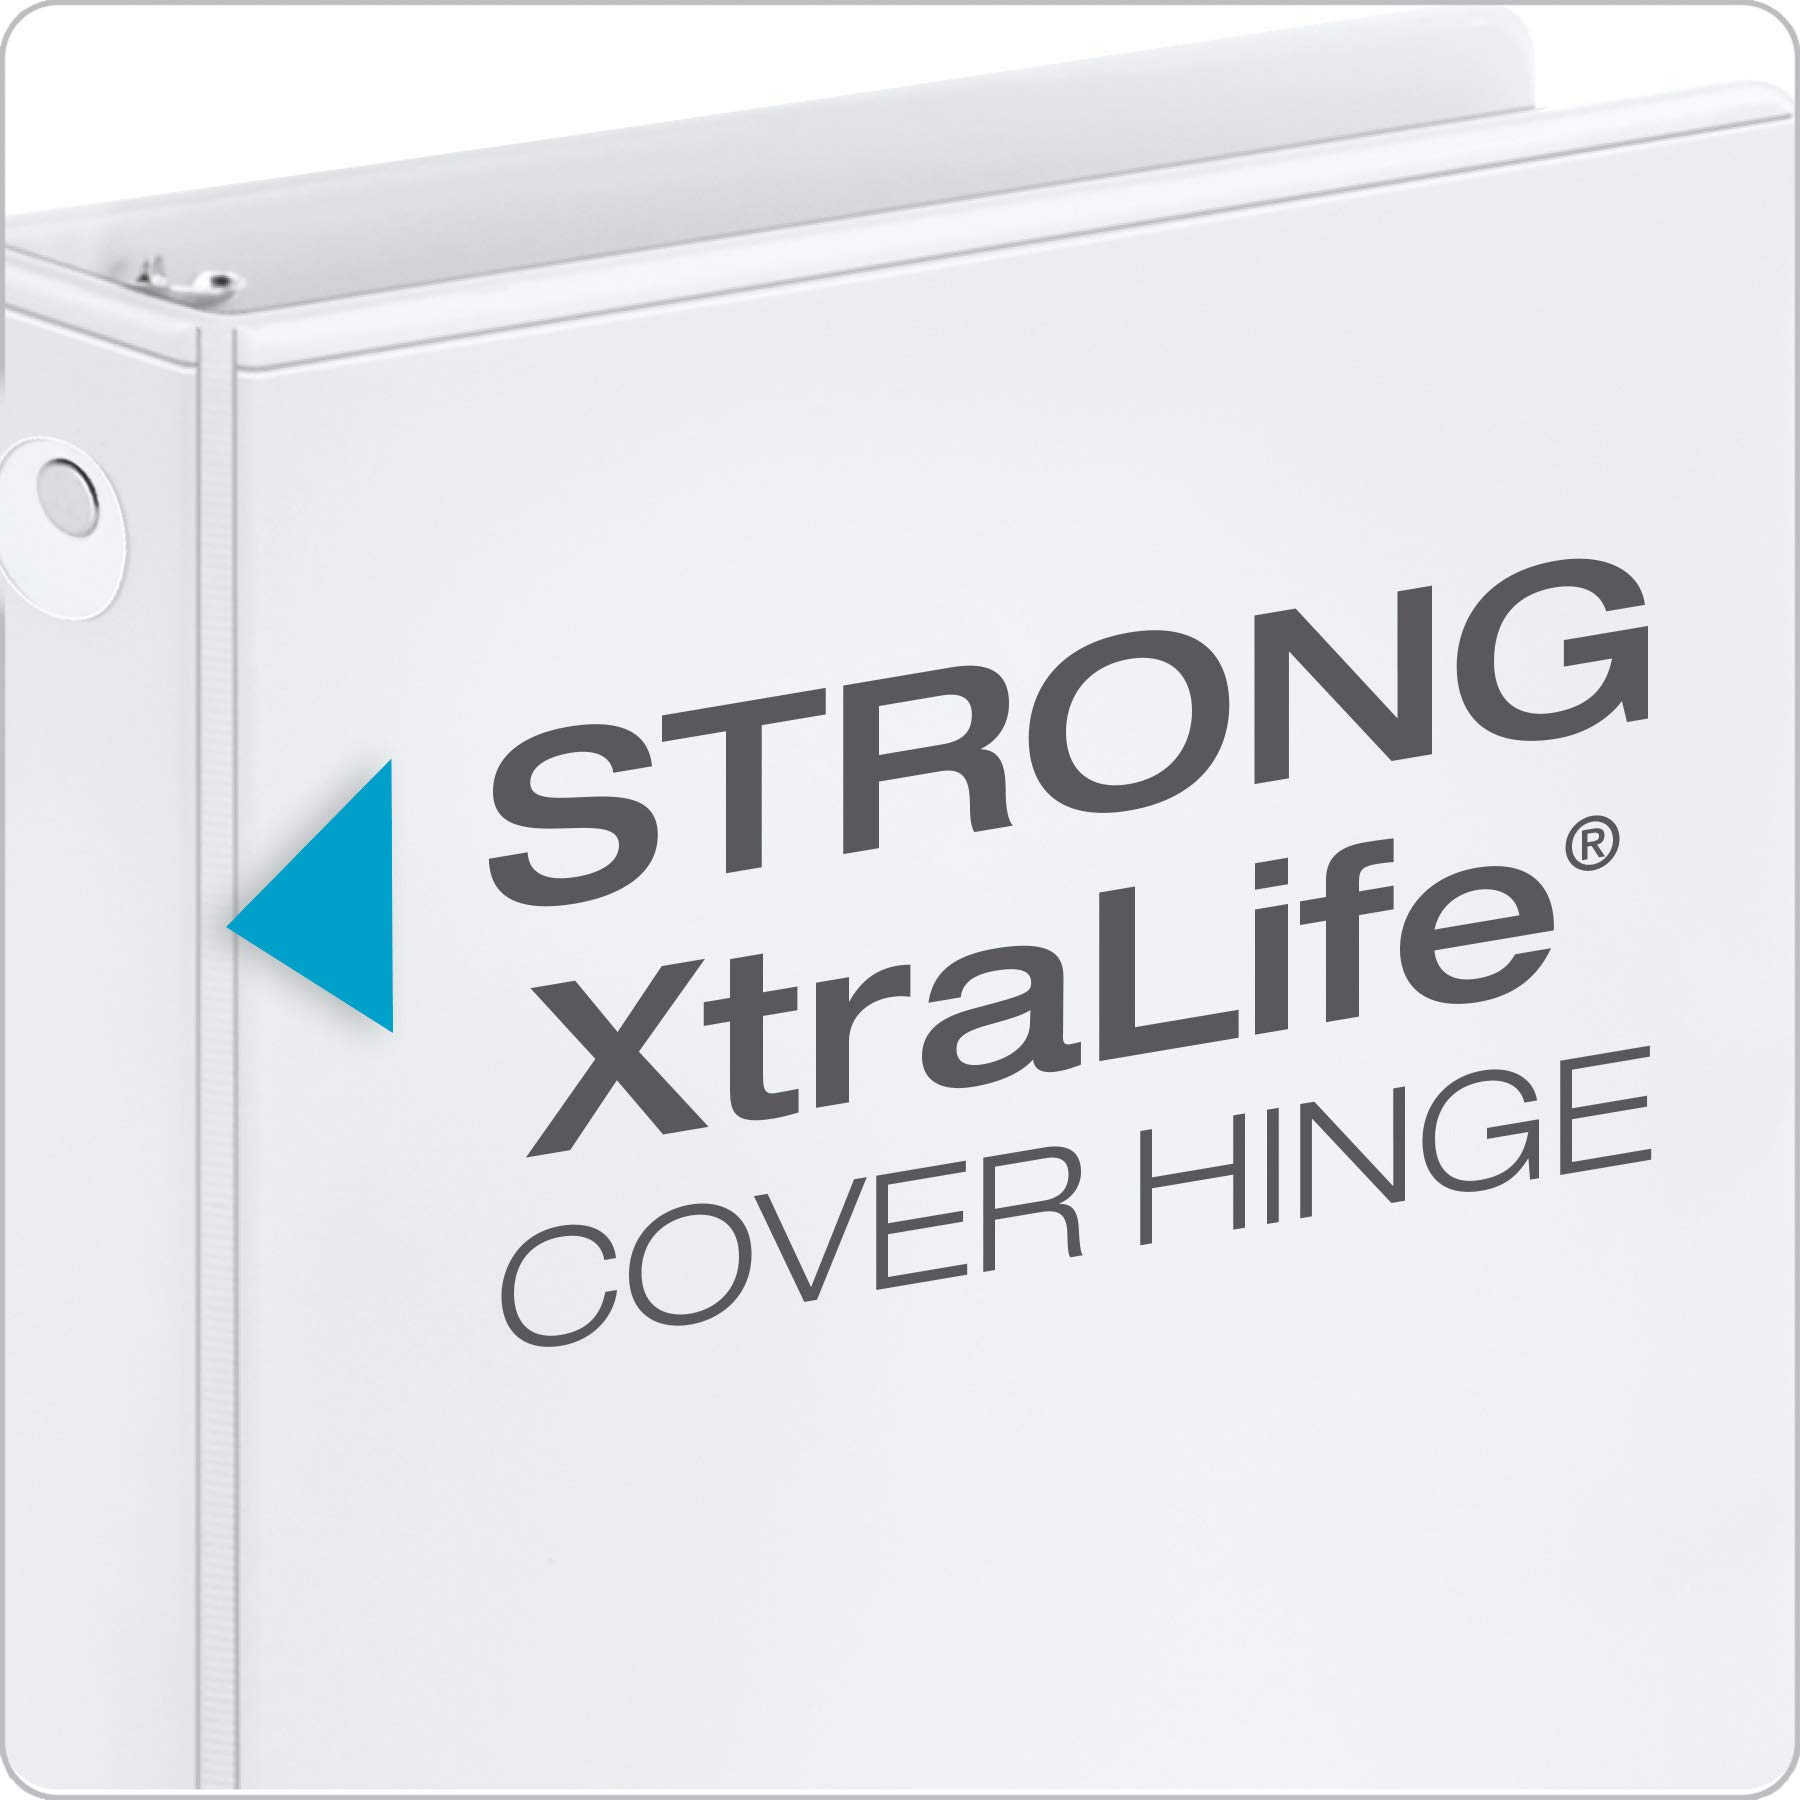 Cardinal Economy 3-Ring Binders, 3'', Round Rings, Holds 625 Sheets, ClearVue Presentation View, Non-Stick, White, Carton of 12 (90651) by Cardinal (Image #3)